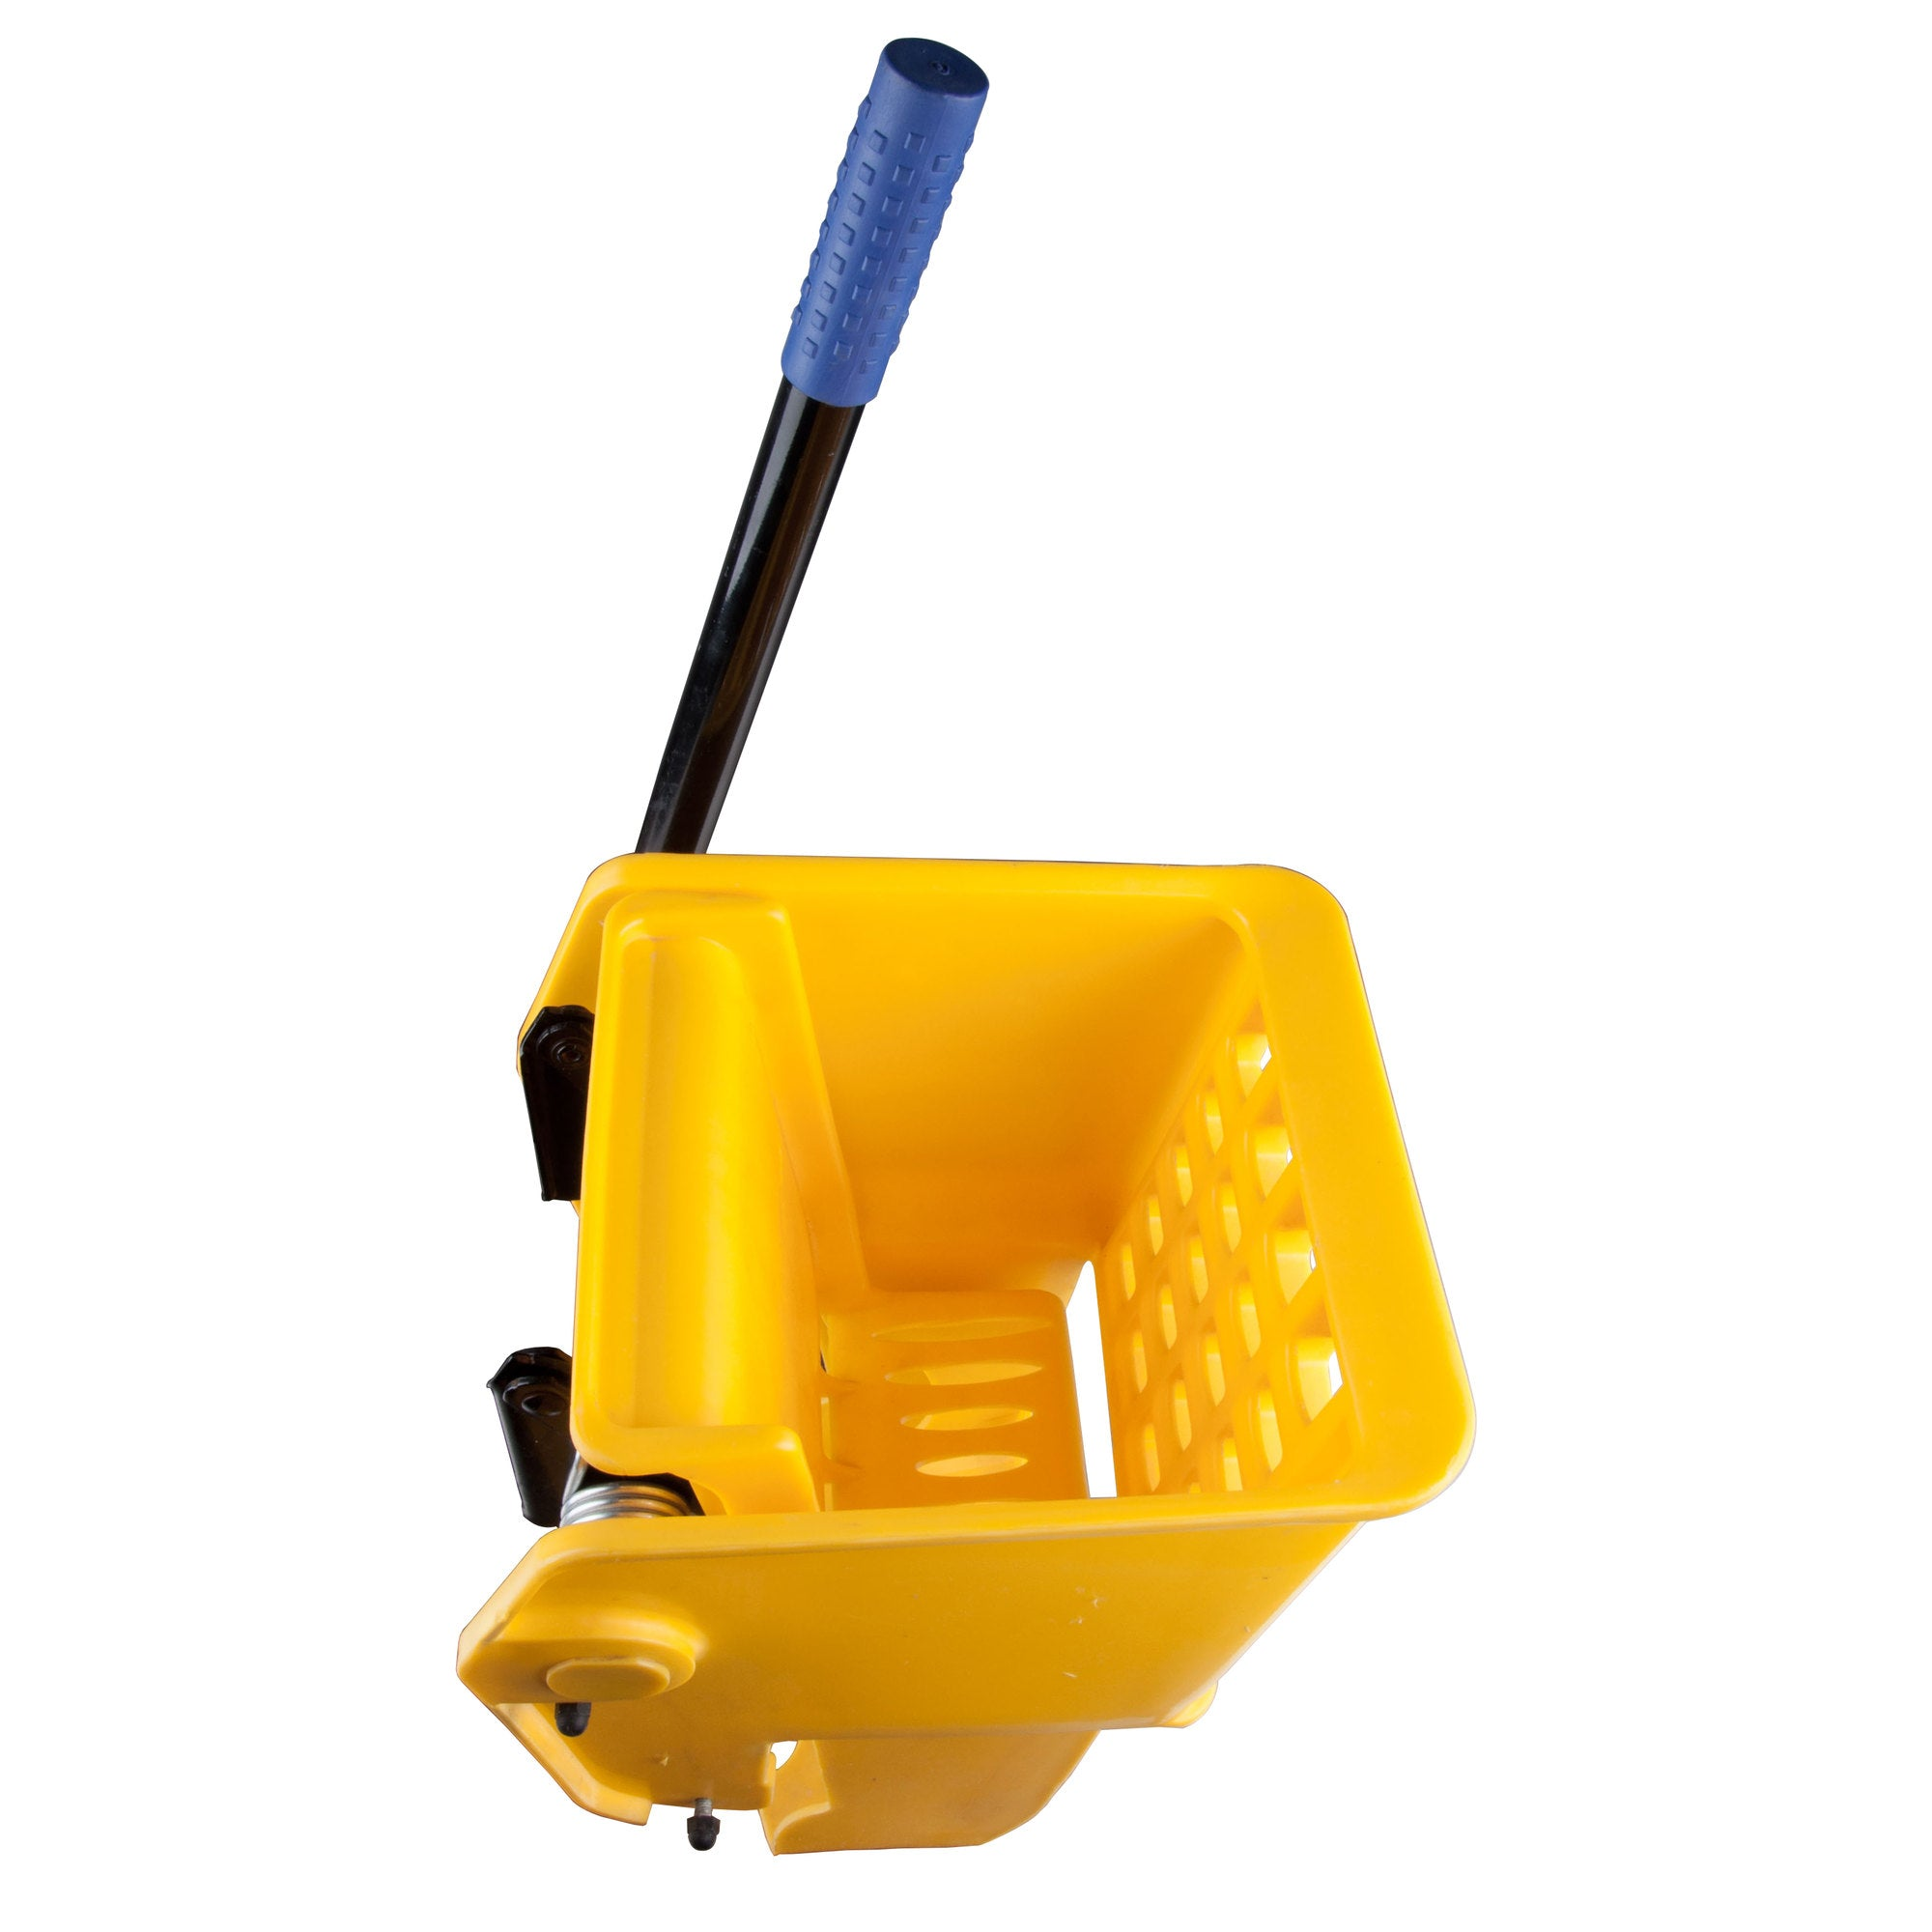 Winco mop bucket dewalt flexvolt sds hammer drill